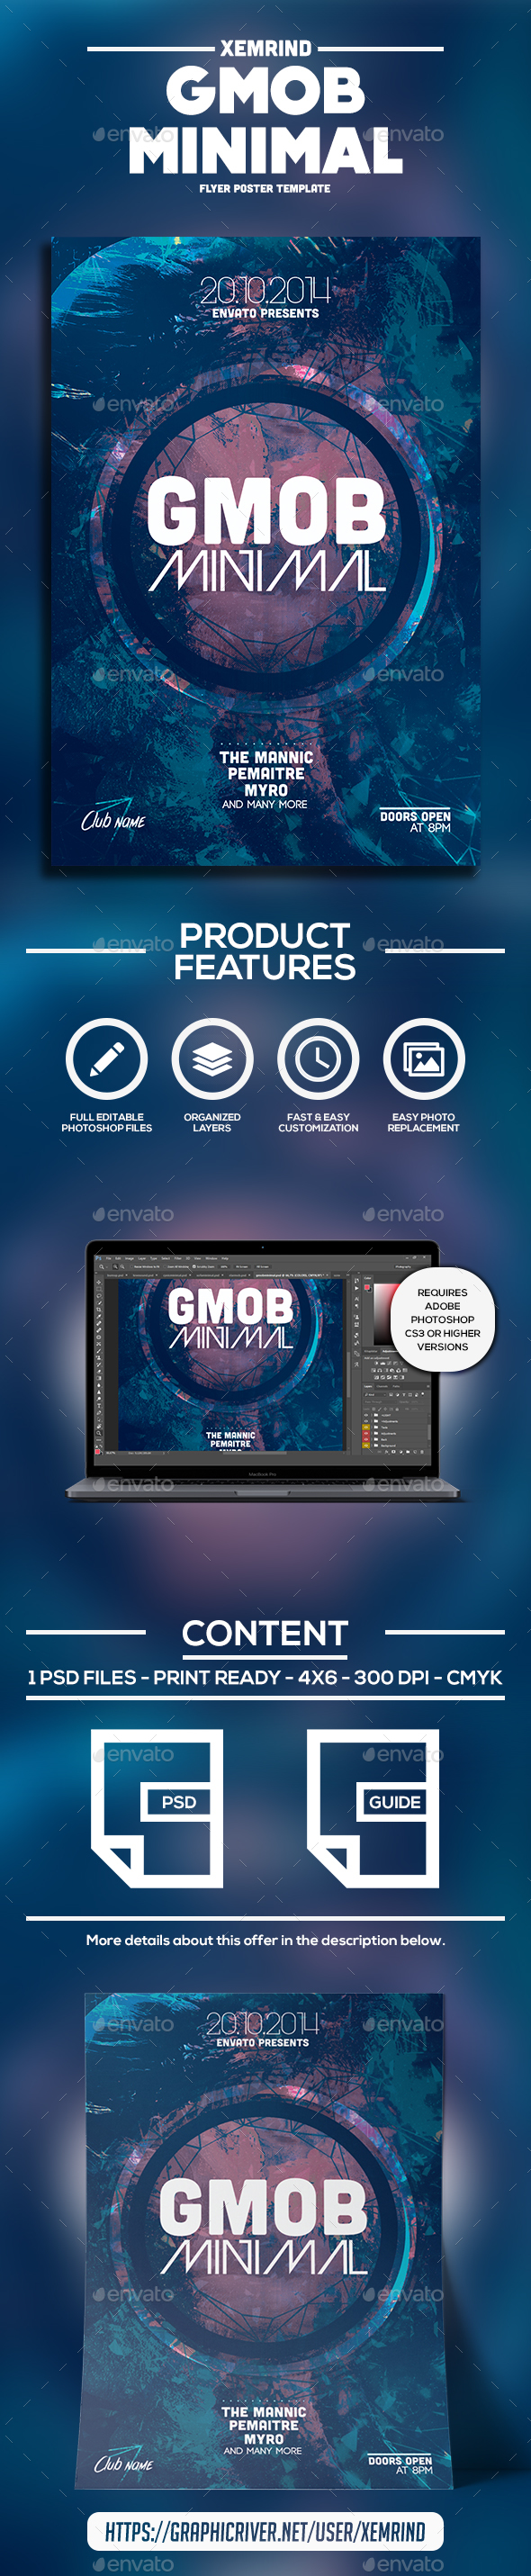 GMOB Minimal Flyer Template - Clubs & Parties Events